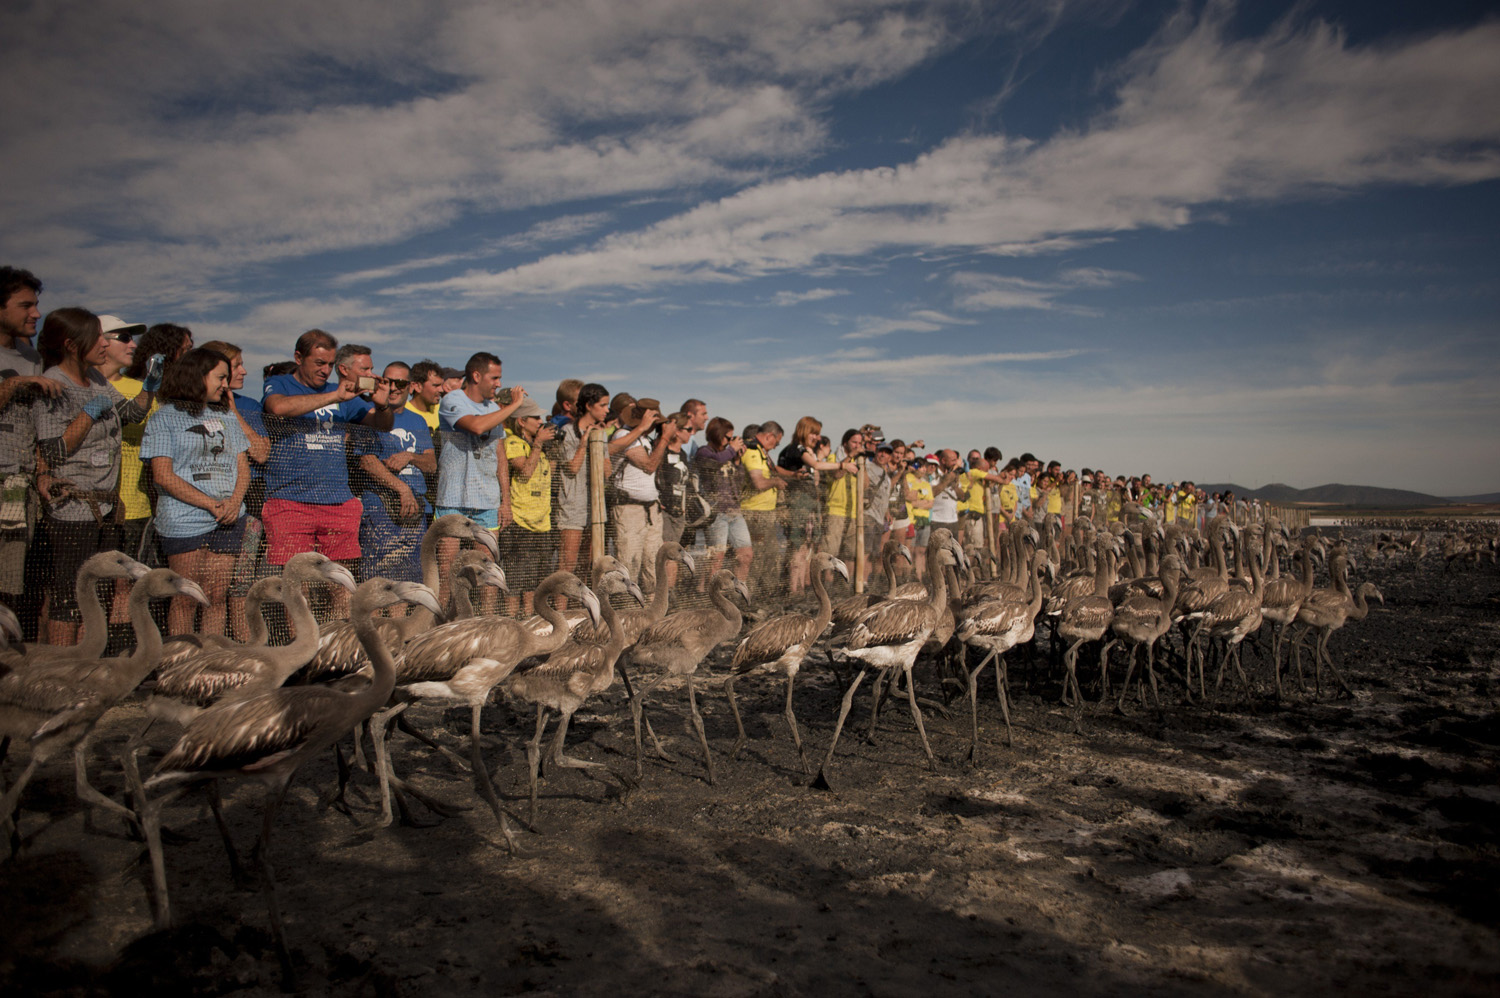 Volunteers watch flamingo chicks being released at the Fuente de Piedra lake, 70 kilometres from Malaga, Spain on July 19, 2014.